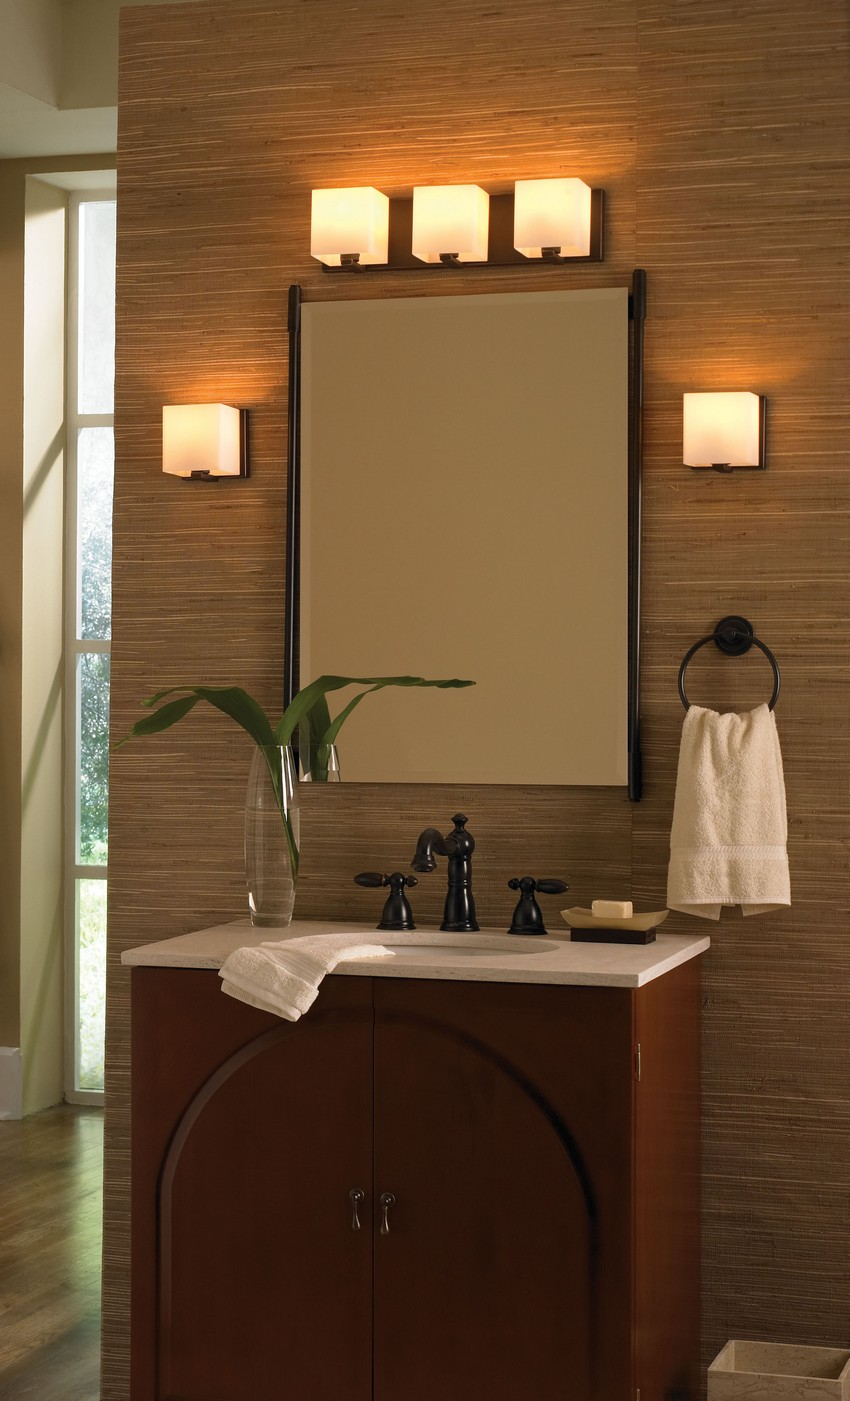 Bathroom Lighting Ideas for Bathroom Decor